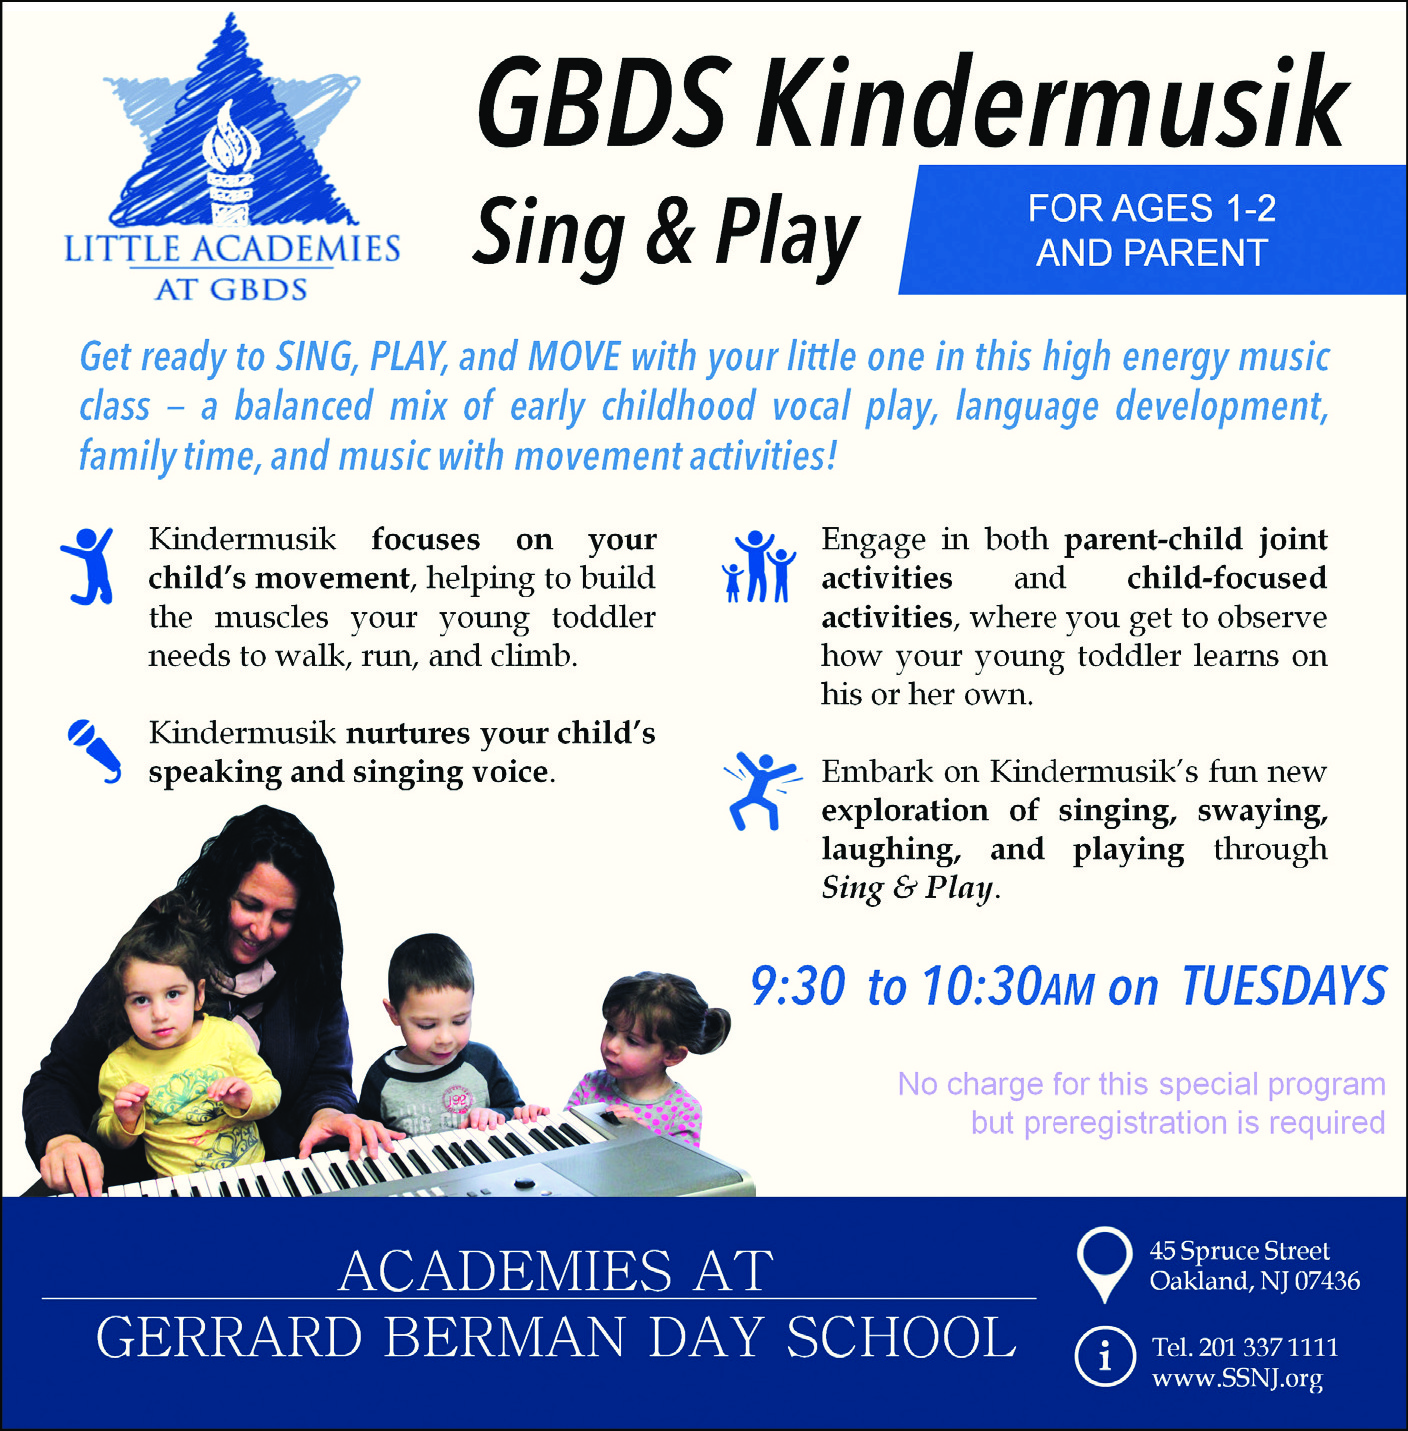 Kindermusik for ages 1-2 years old at Little Academies at Gerrard Berman Day School